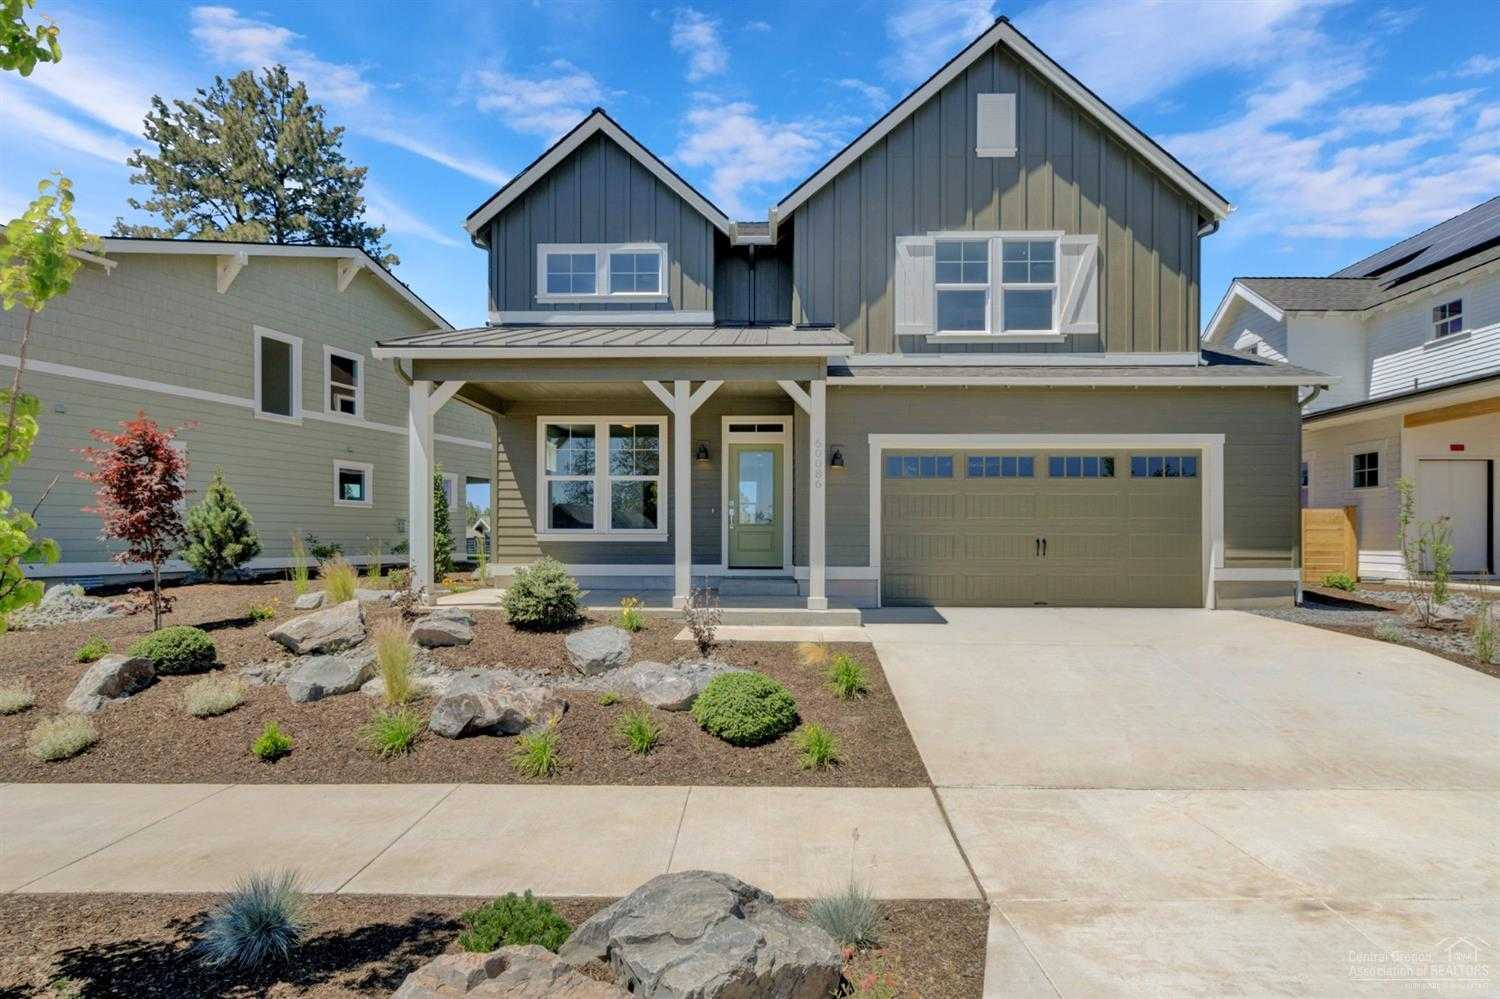 $549,900 - 4Br/3Ba -  for Sale in Bend